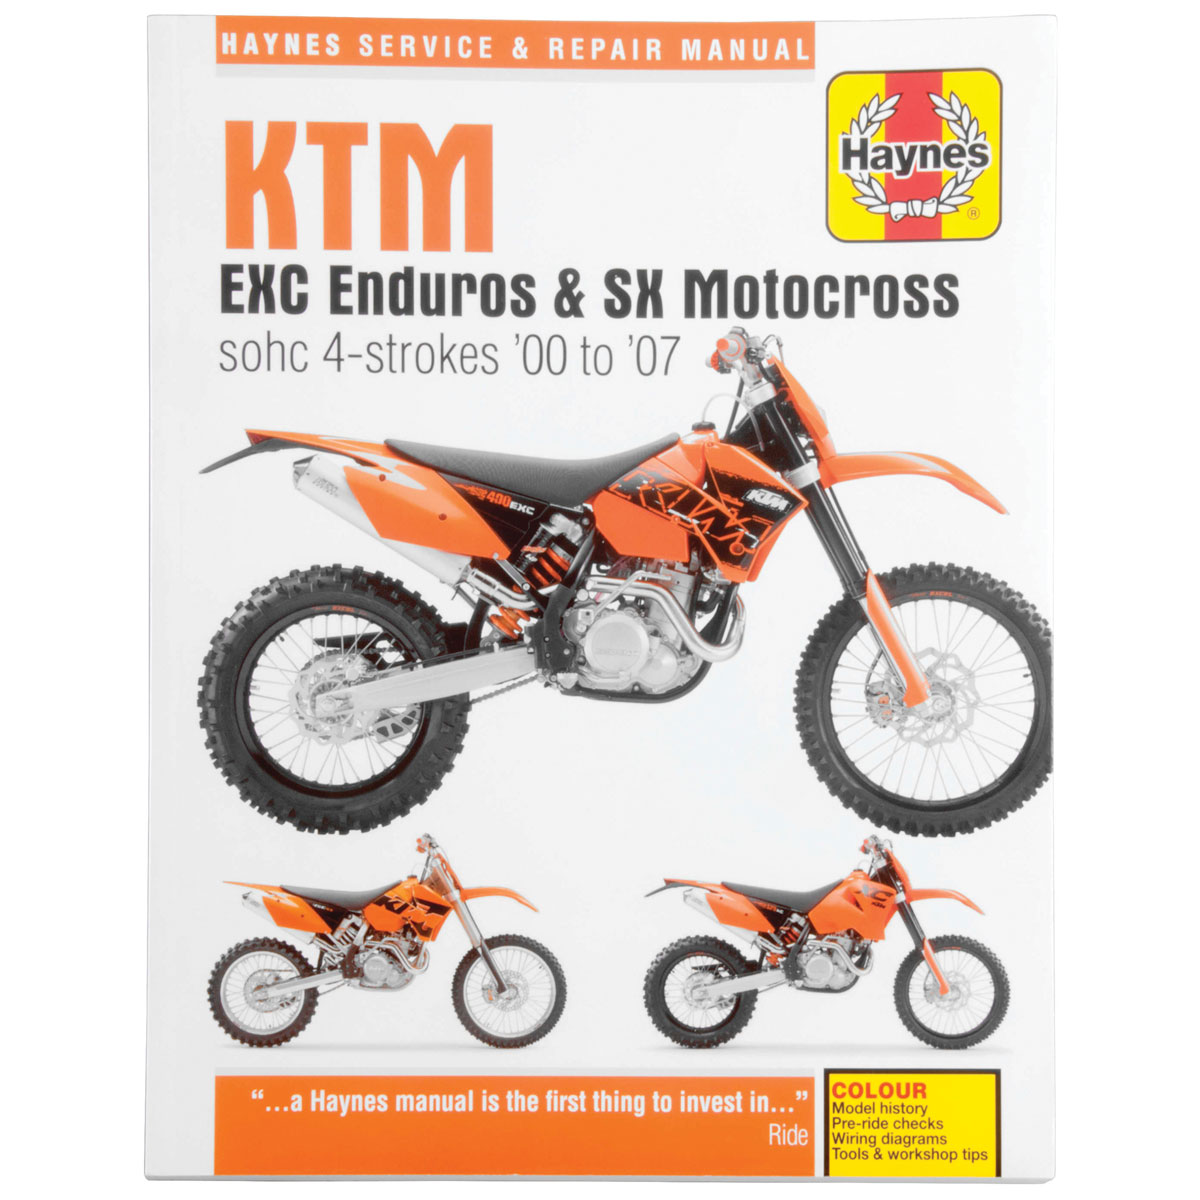 Ktm Motorcycle Wiring Diagrams Together With 2003 Ktm Wiring Diagrams